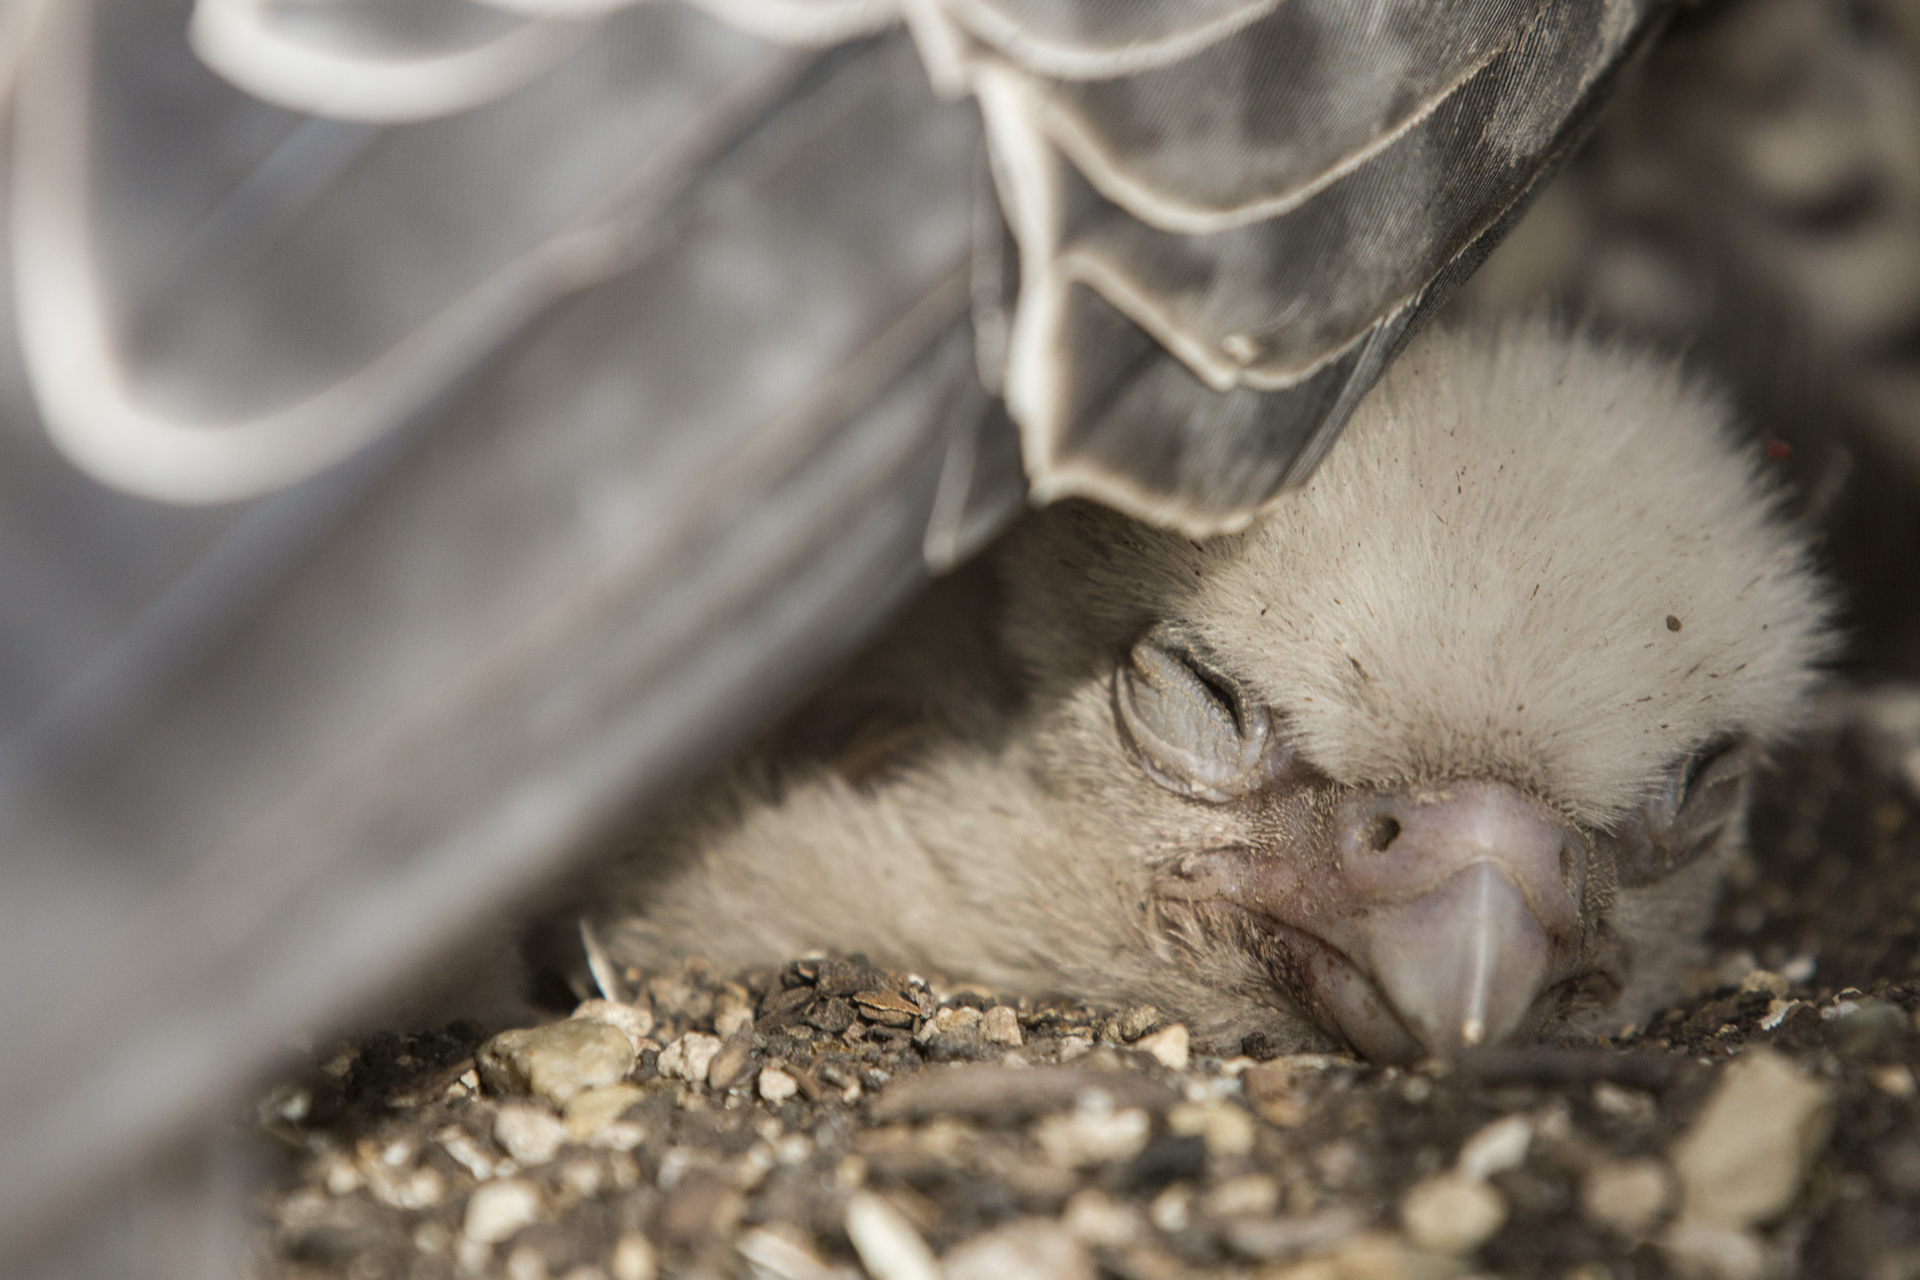 Even after hatching the chicks are brooded for a few more weeks until they're large enough to cope on their own.